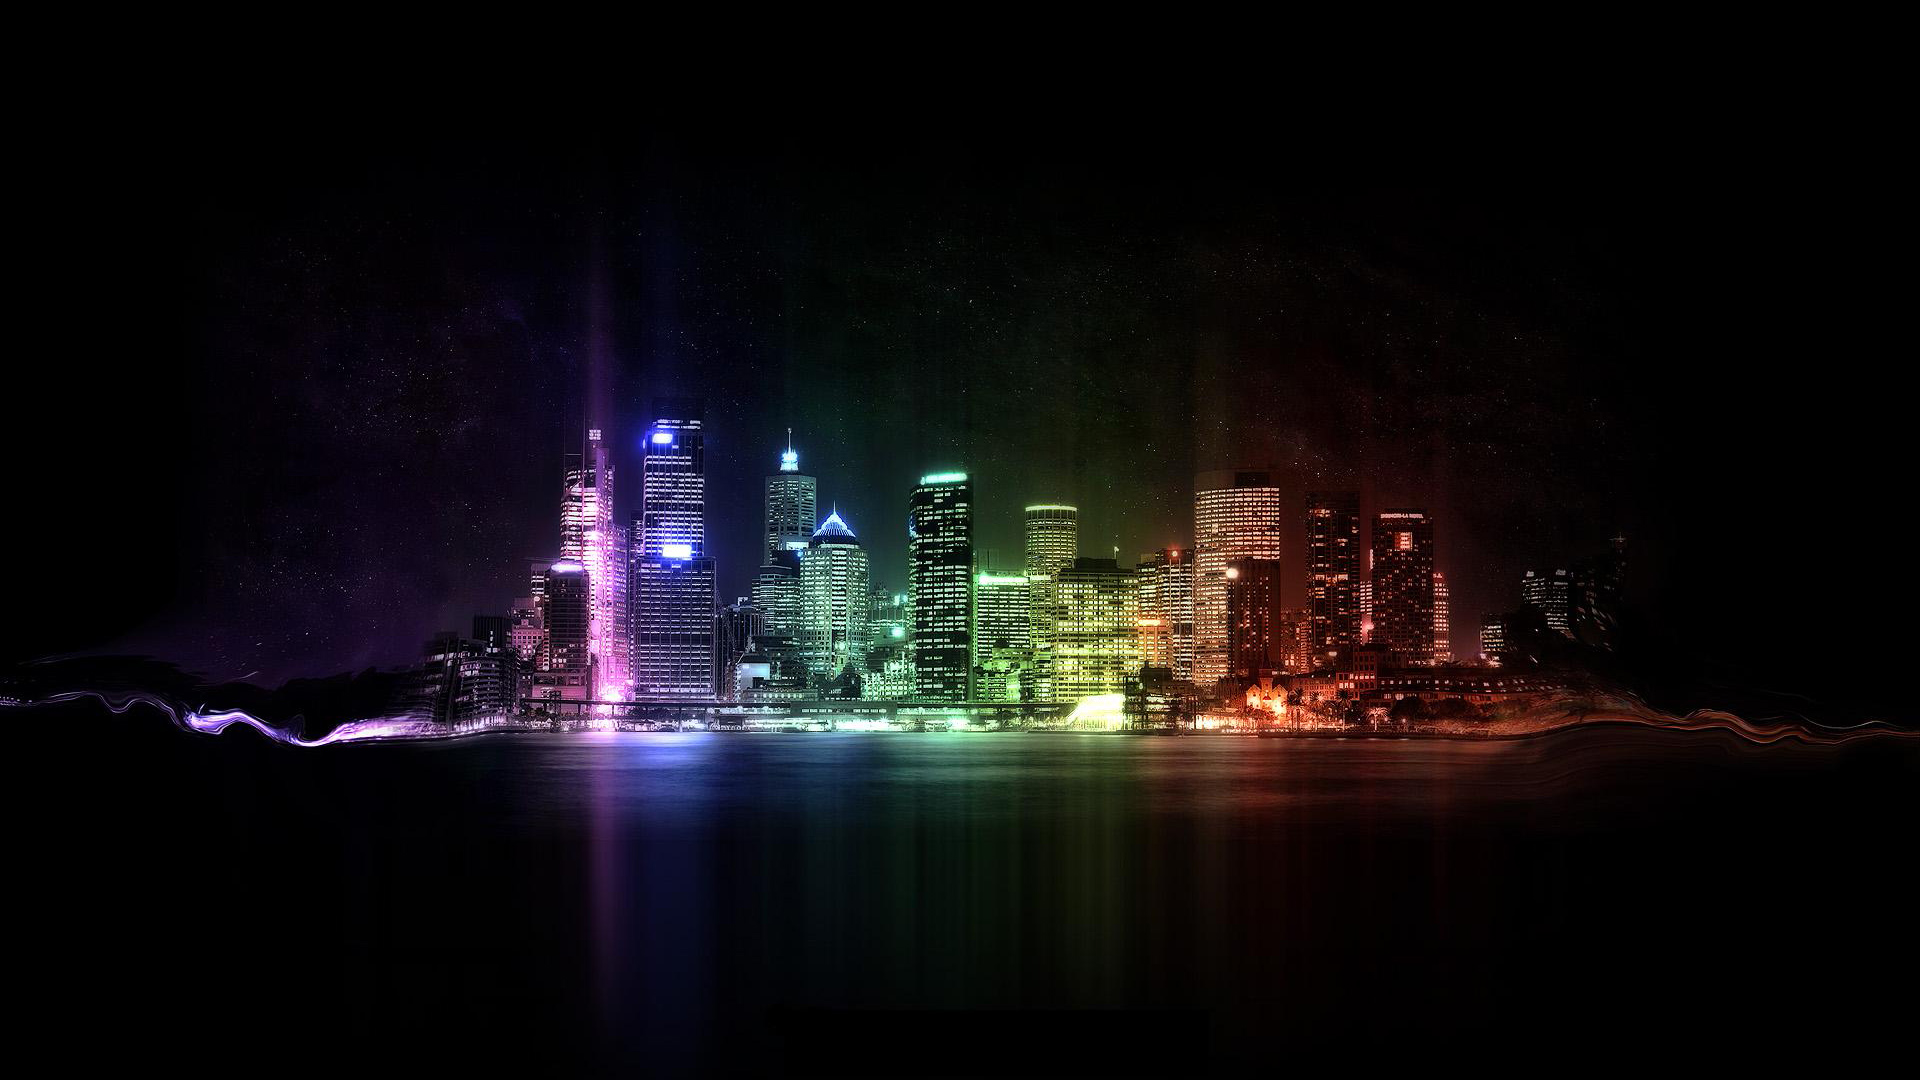 City Of Lights Wallpapers HD Wallpapers 1920x1080